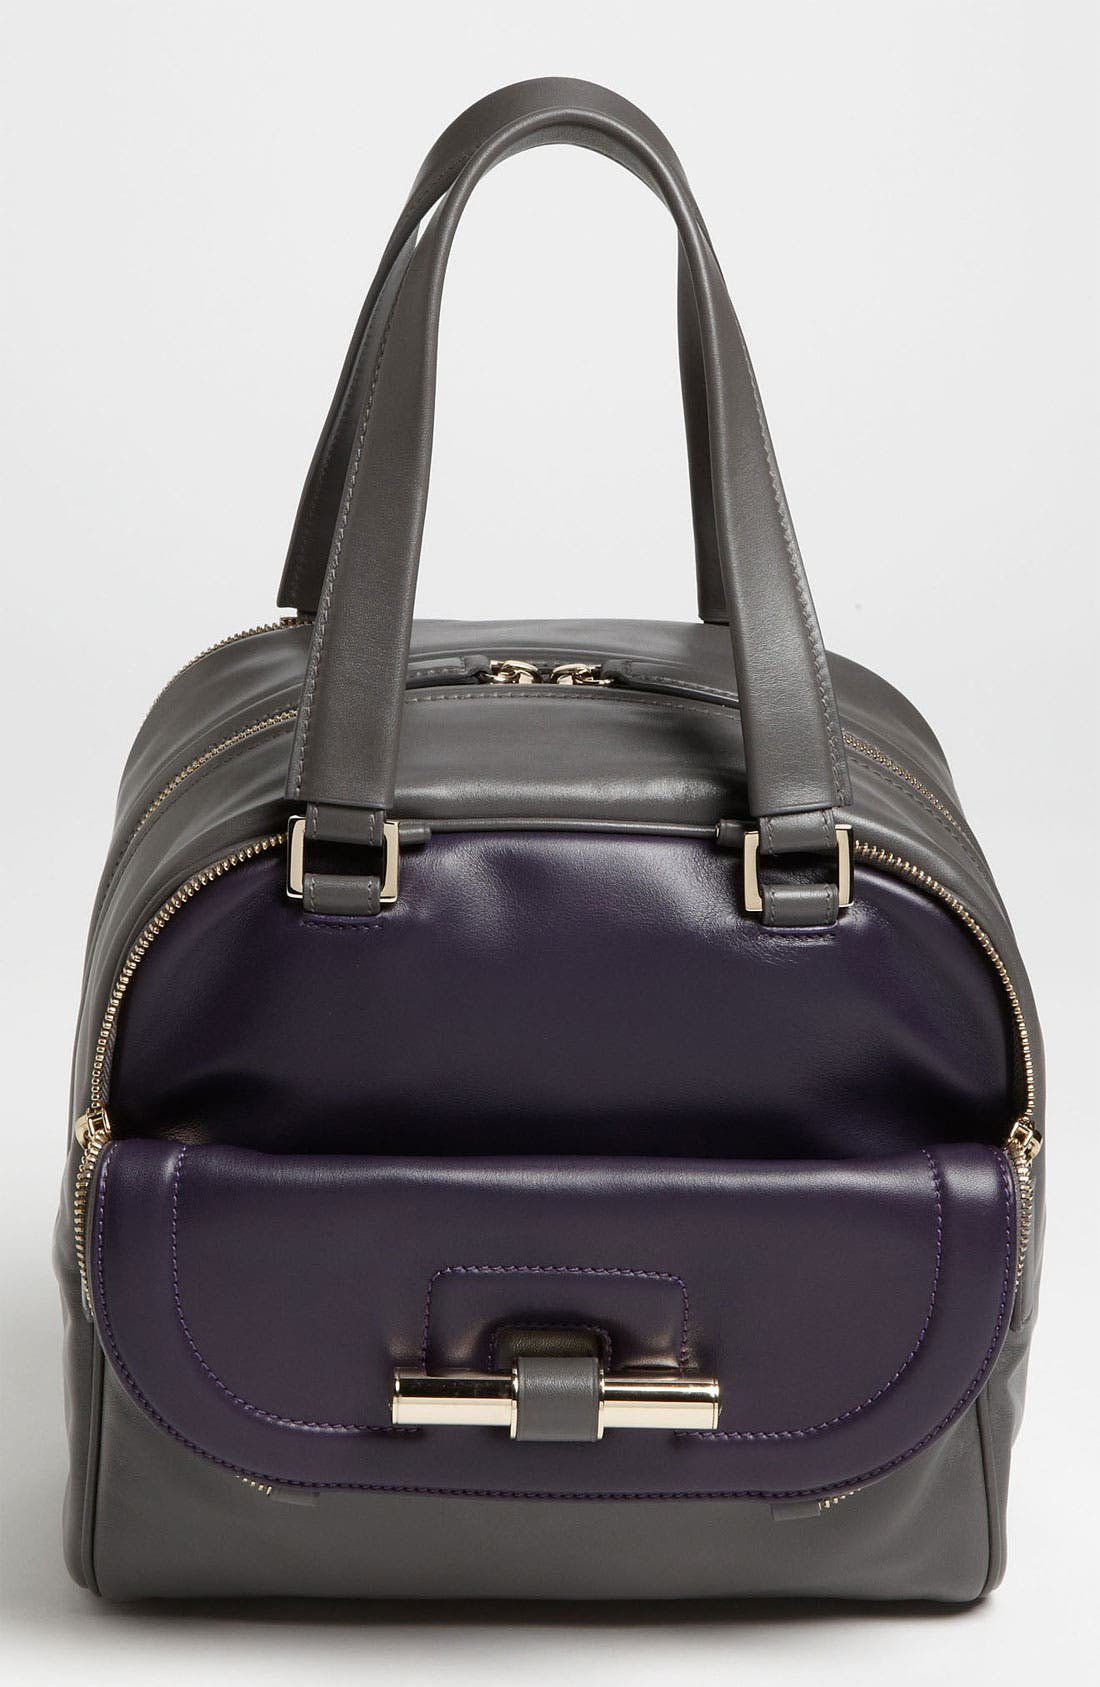 Main Image - Jimmy Choo 'Justine - Small' Bicolor Leather Satchel